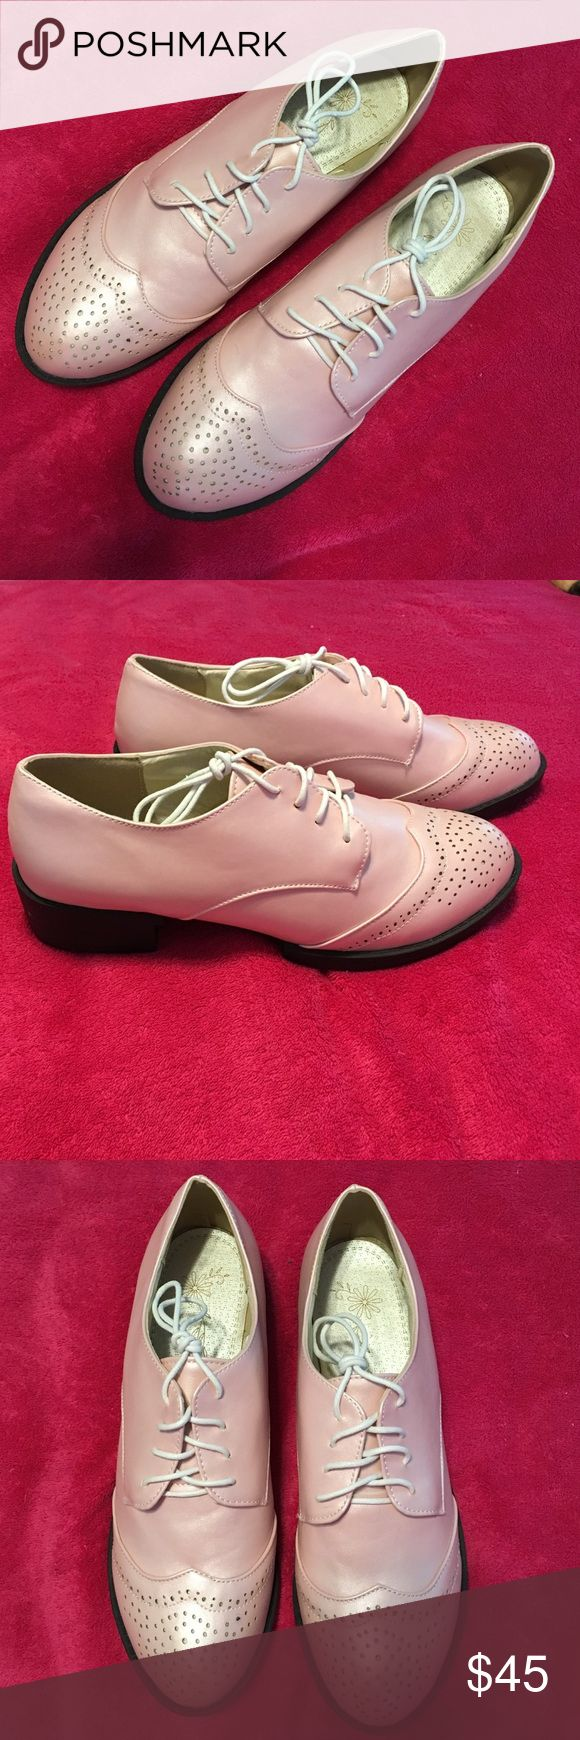 """Brogues Wing Tip Oxfords, Frosted Ice Pink, size 9 Women's Classic Chunky Heels Lace up Brogues Wing Tip Oxfords; Brand New, never worn; synthetic leather; heel height approximately: 1.18""""; color: frosted ice pink-shimmery light pink. Very Cute! They are a tad narrow; I purchased using European sizing and they were a whole size too big, but if you wear a US size 9, they should fit. Shoes Flats & Loafers"""